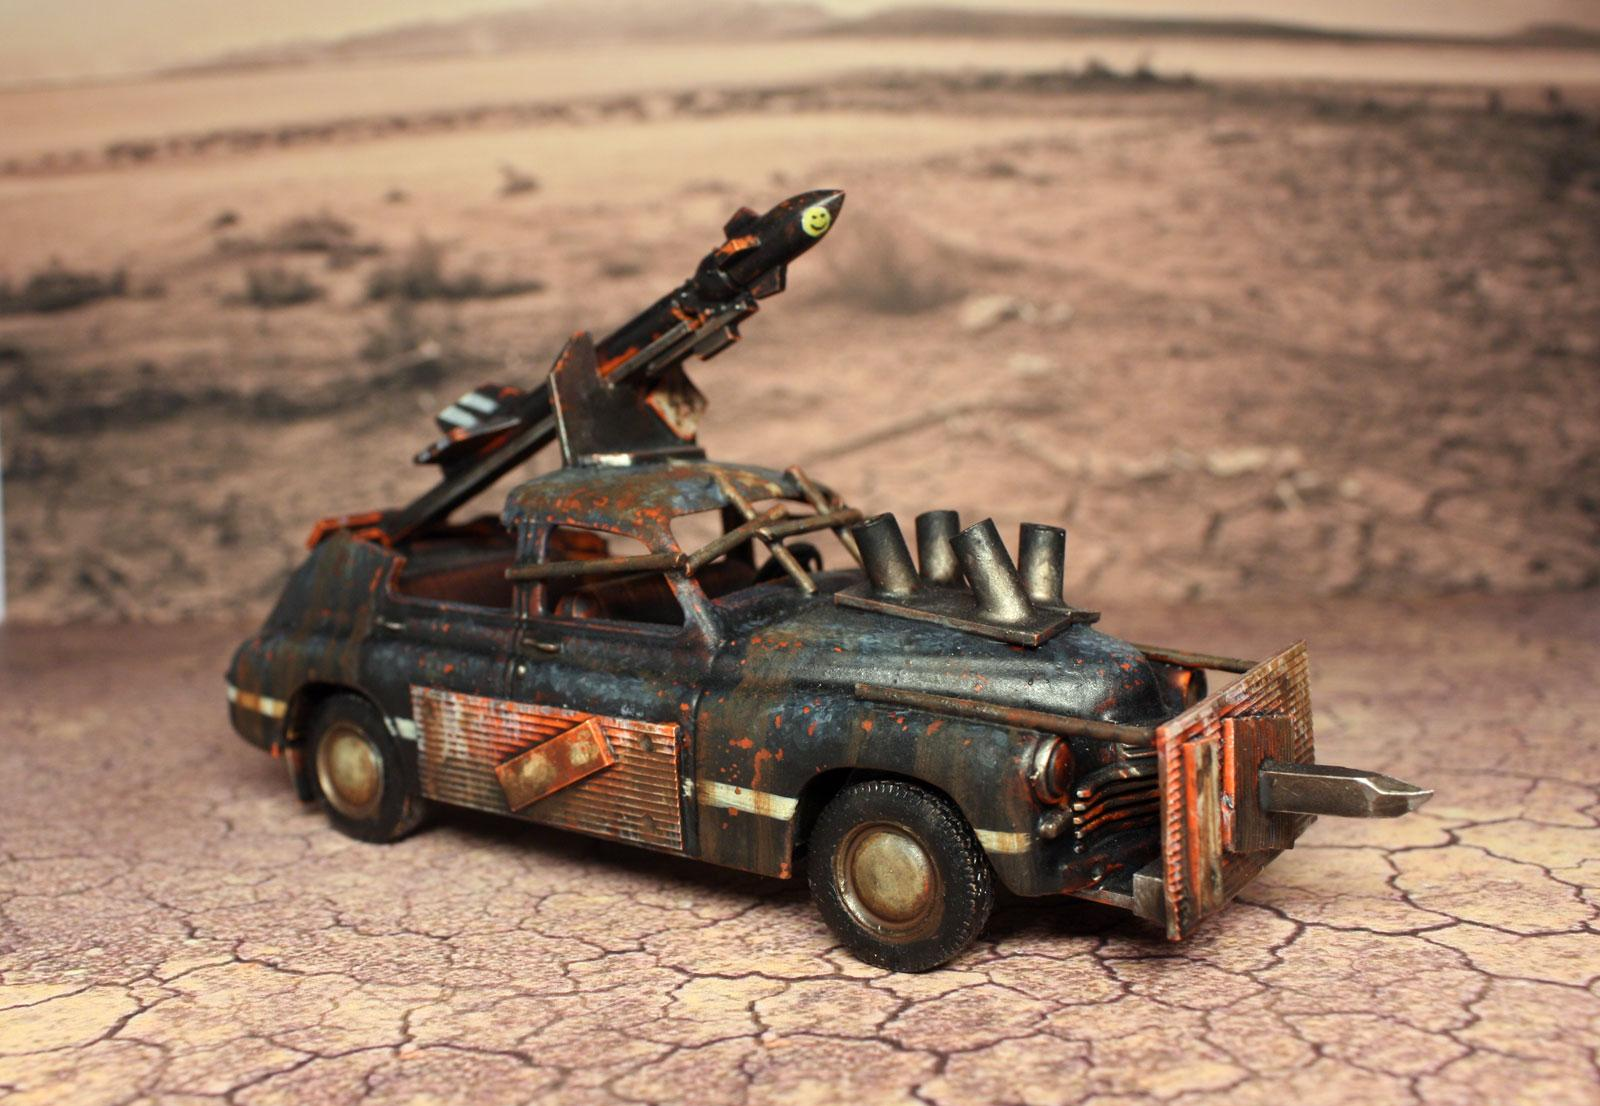 Apo, Apocalypse, Button, Cars, Mad, Max, Nation, Post, Rbn, Red, Rust, Weathered